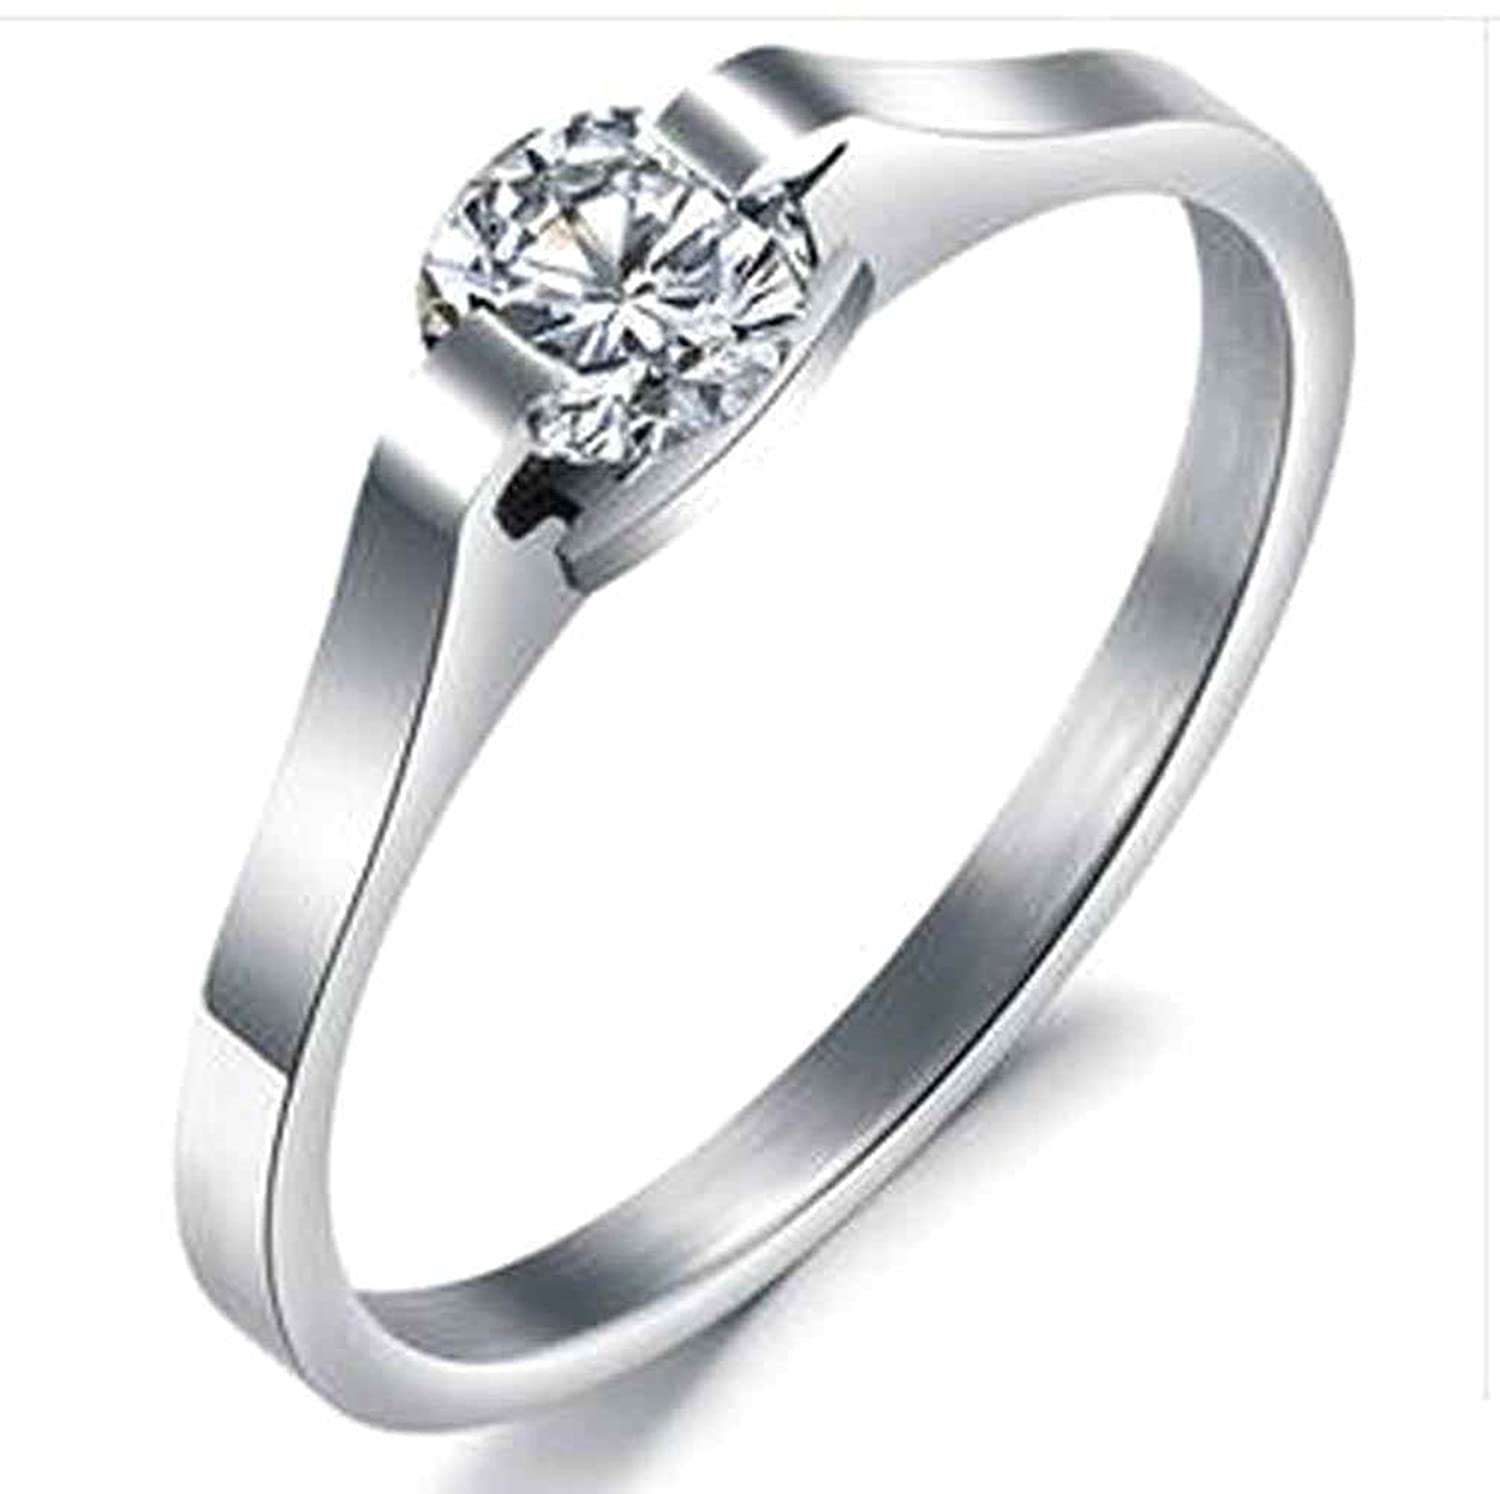 Aokarry Women's Classic Stainless Steel Wedding Bands Promise Engagement Rings for Women 1.5MM Size AOKAGJ65